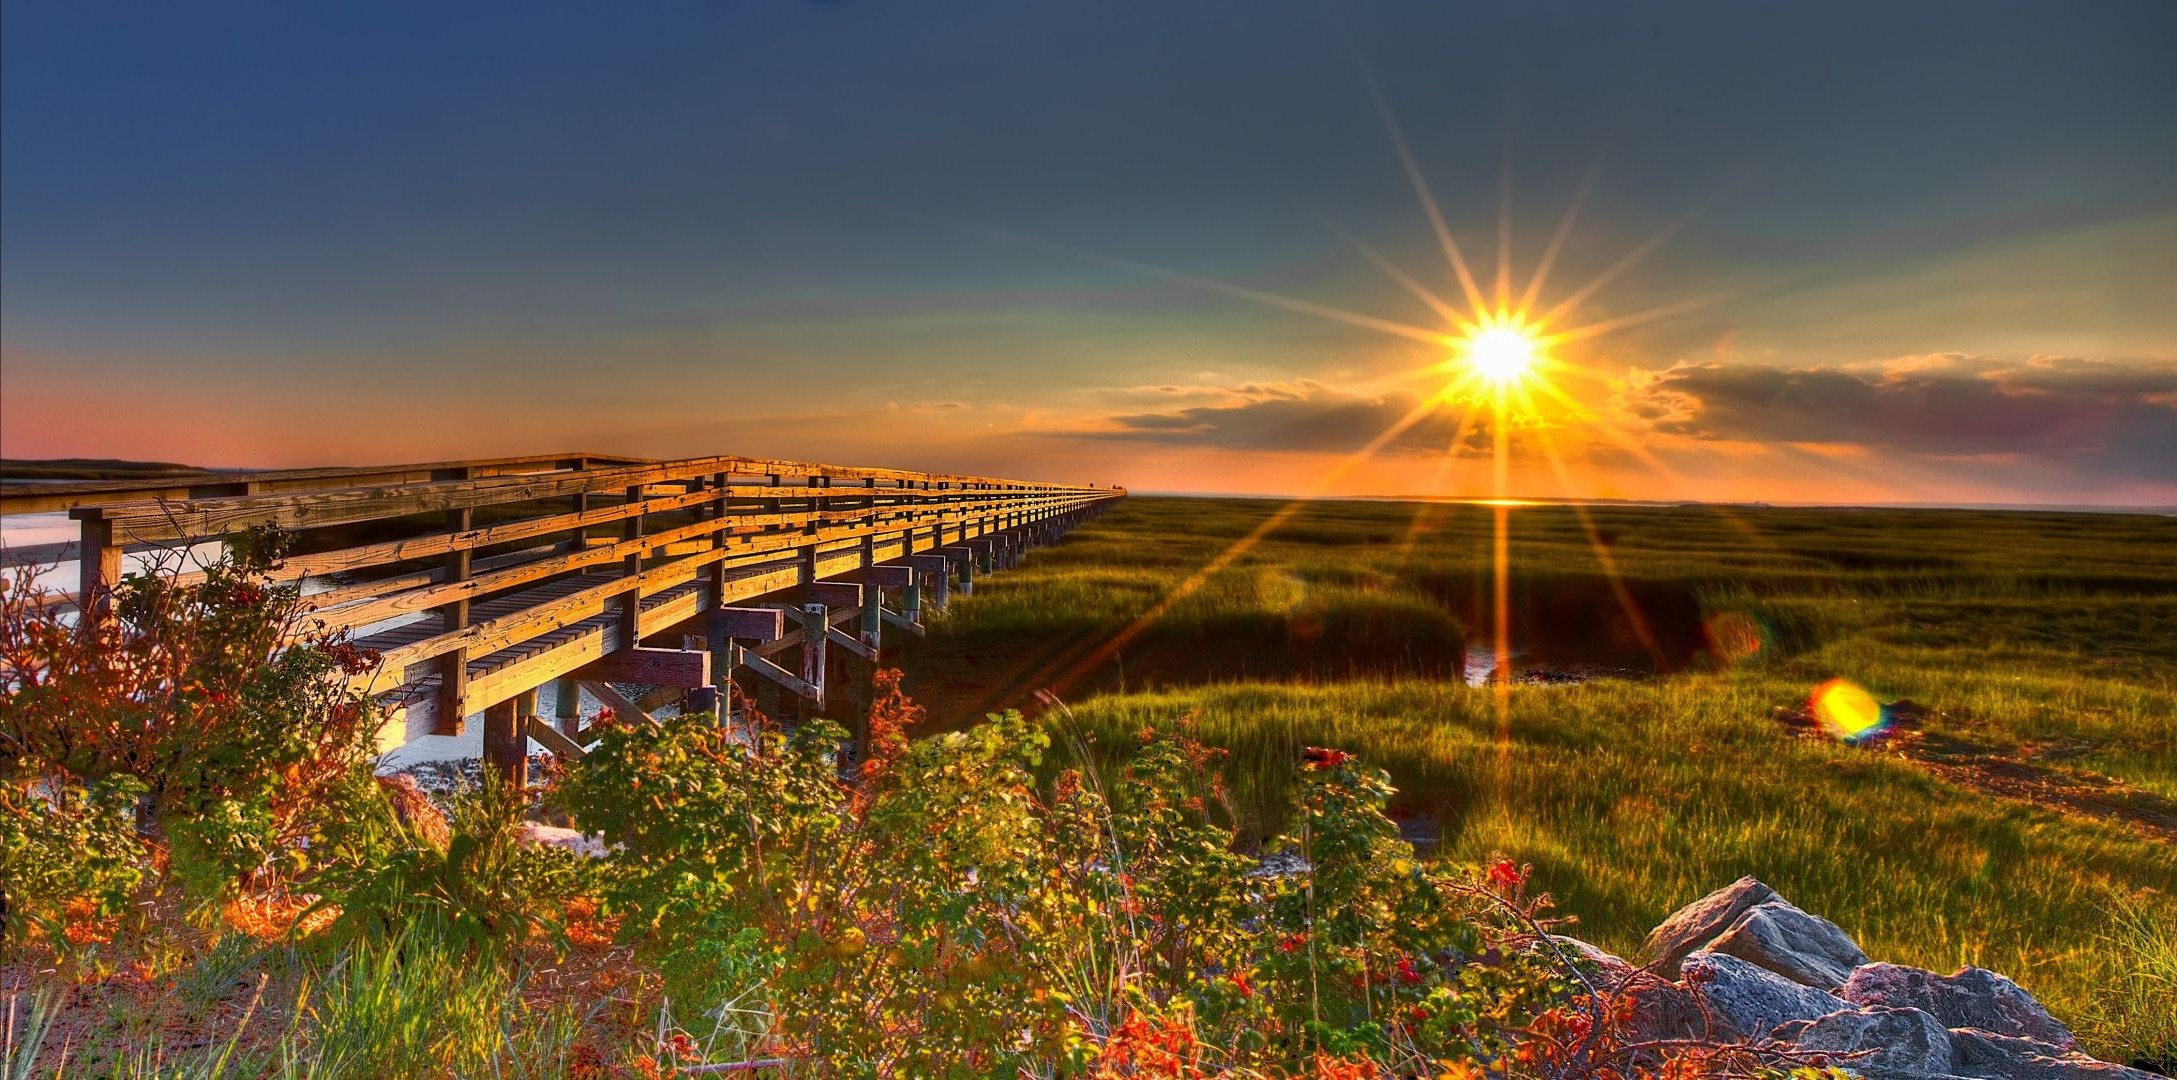 Sunrise nature field bridge